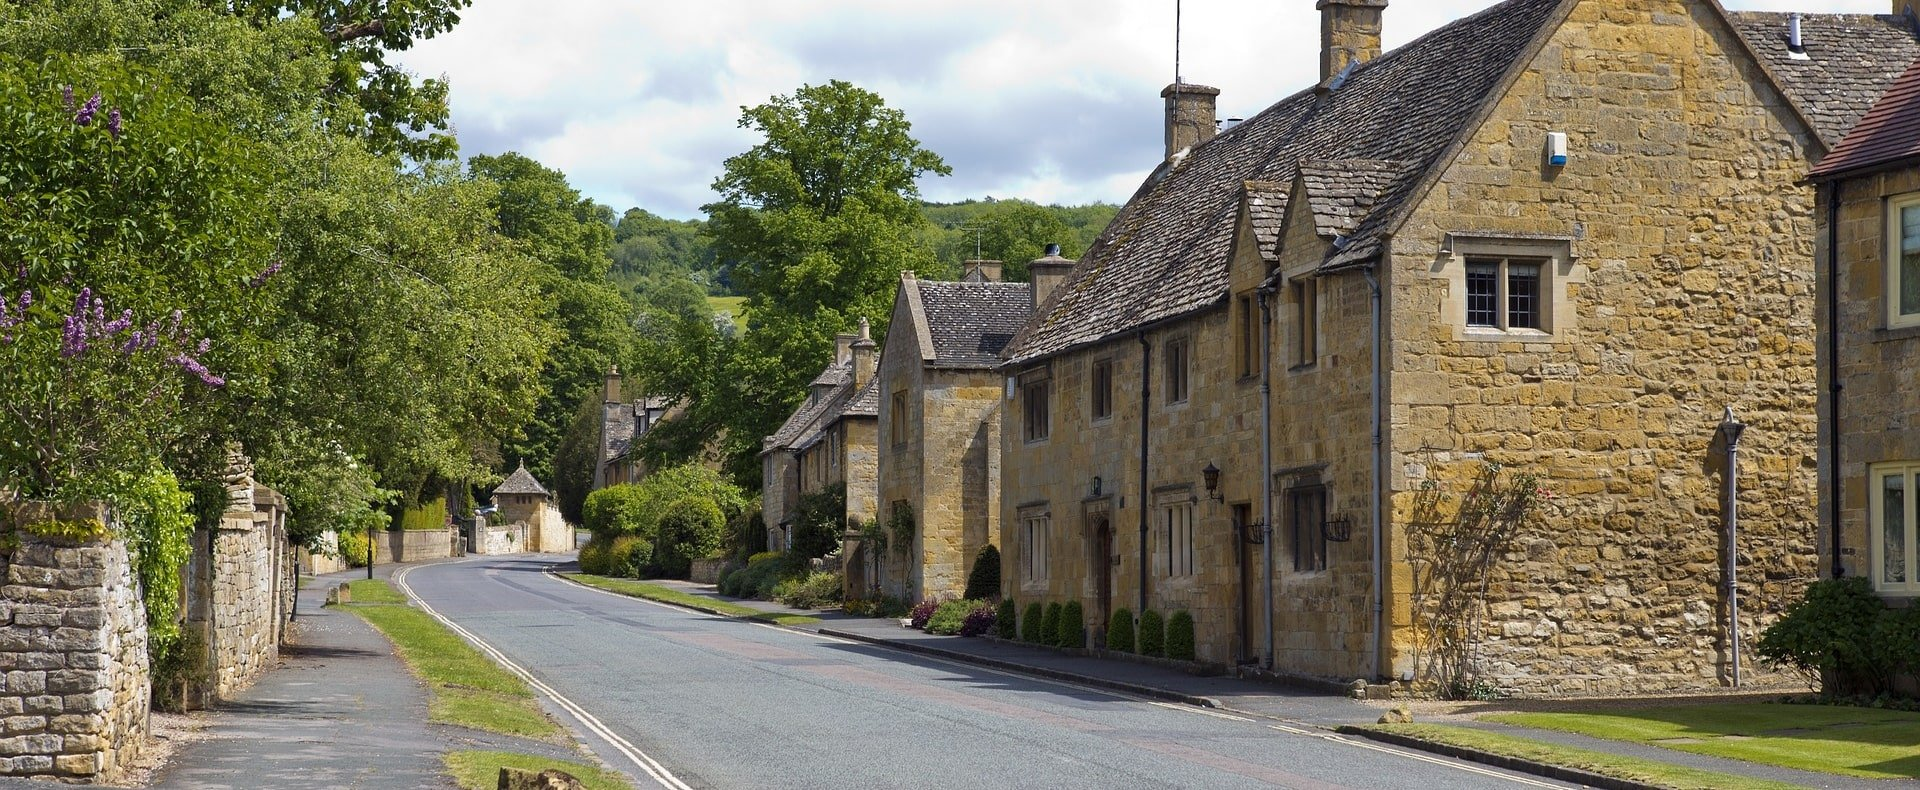 Sightseeing Cotswolds Experience Gallery